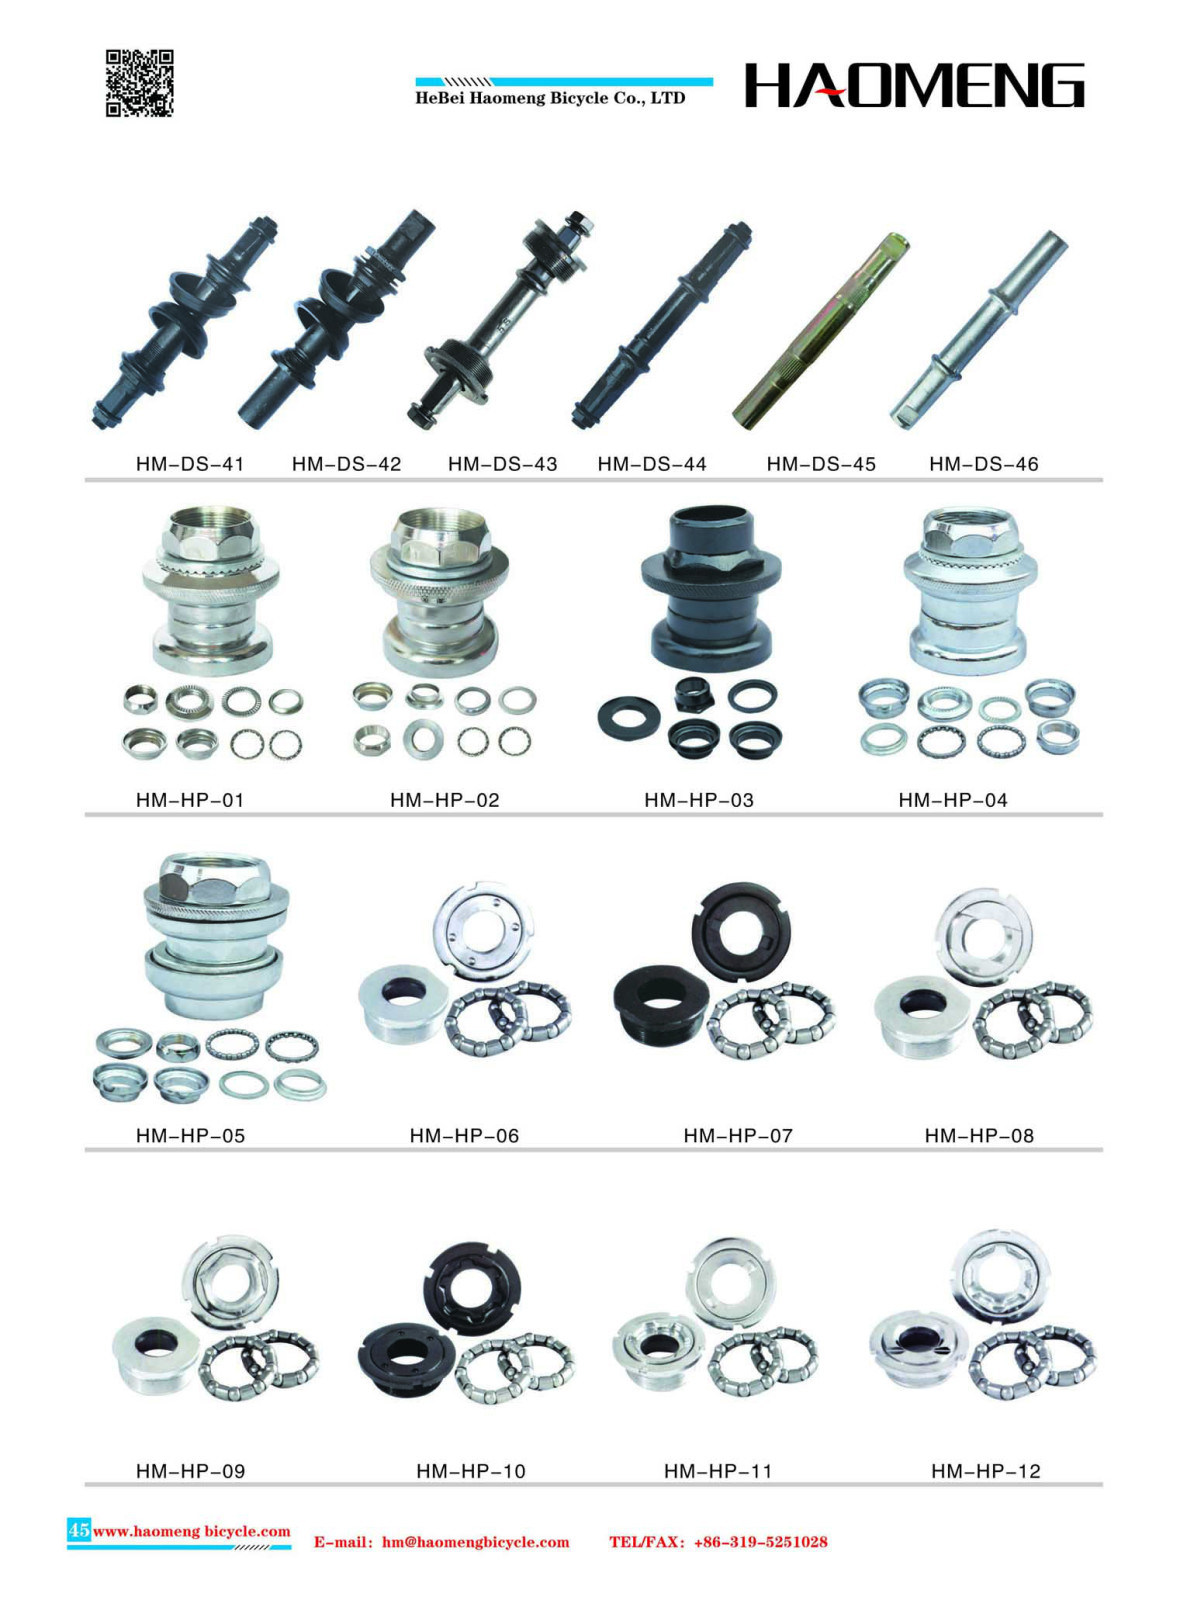 China Bicycle Bike Spare Parts Factory Manufacturer